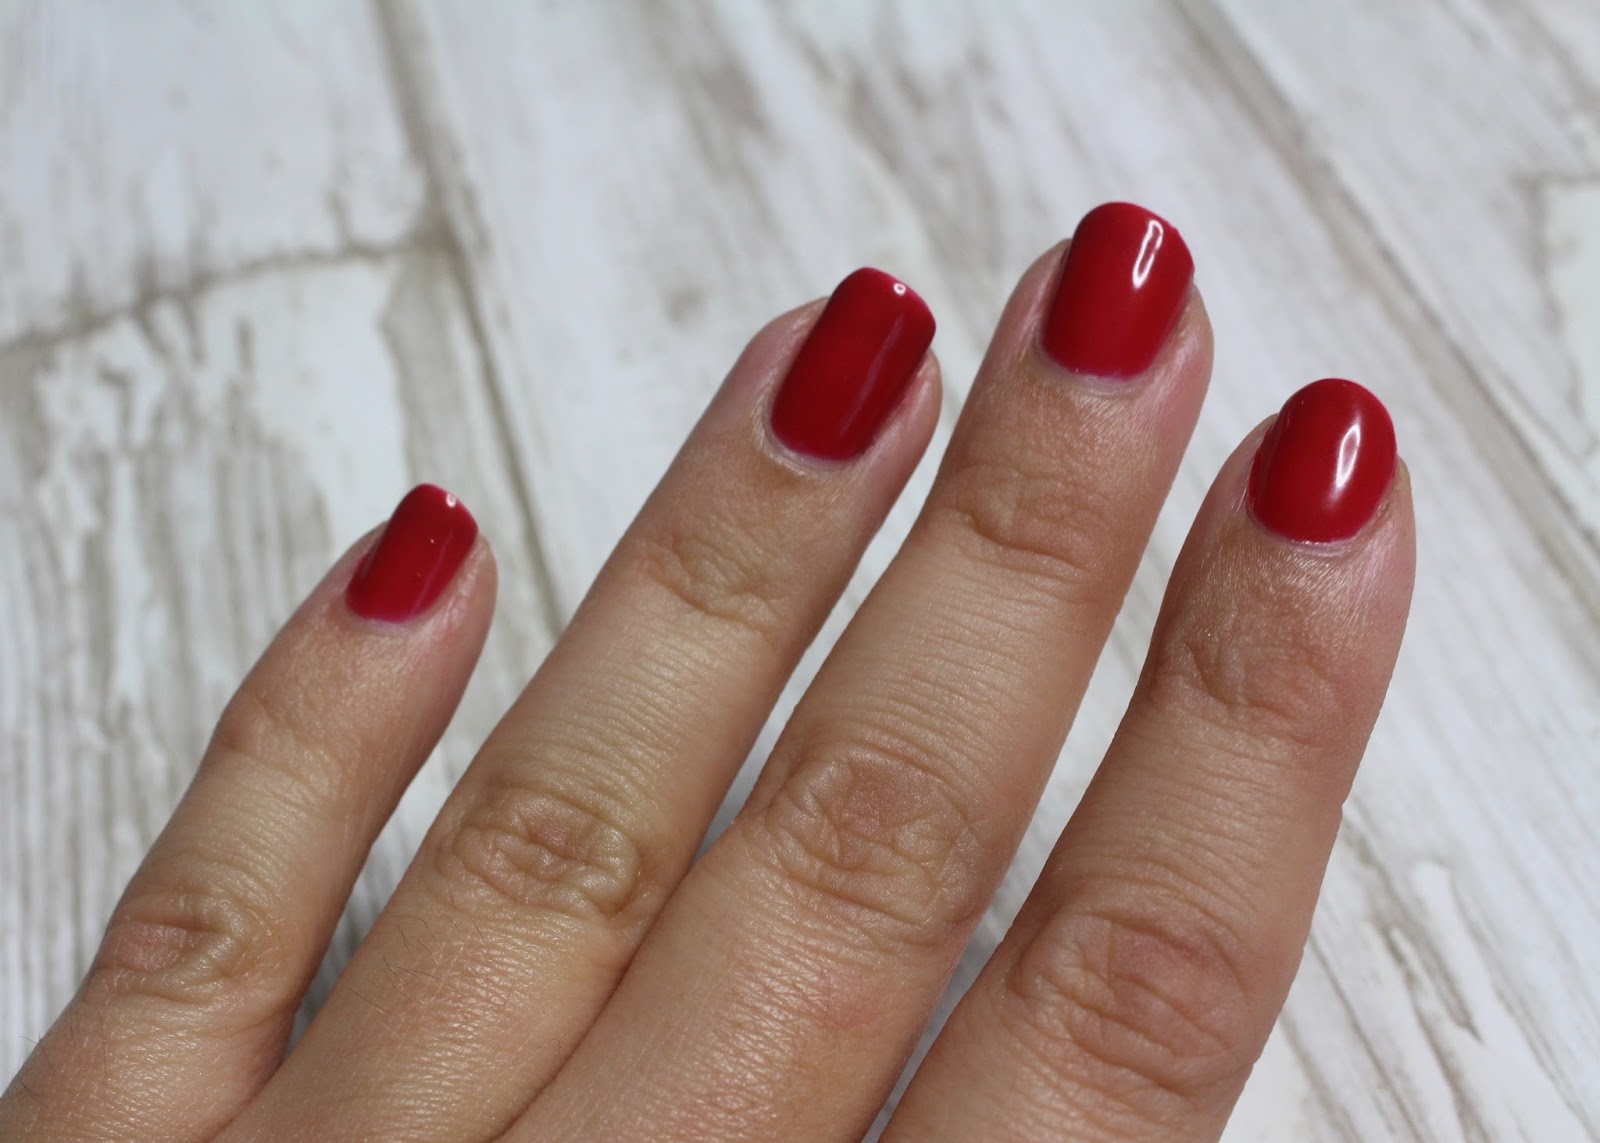 Red Carpet Ready starter kit review - gel nails in 5 minutes? Really ...